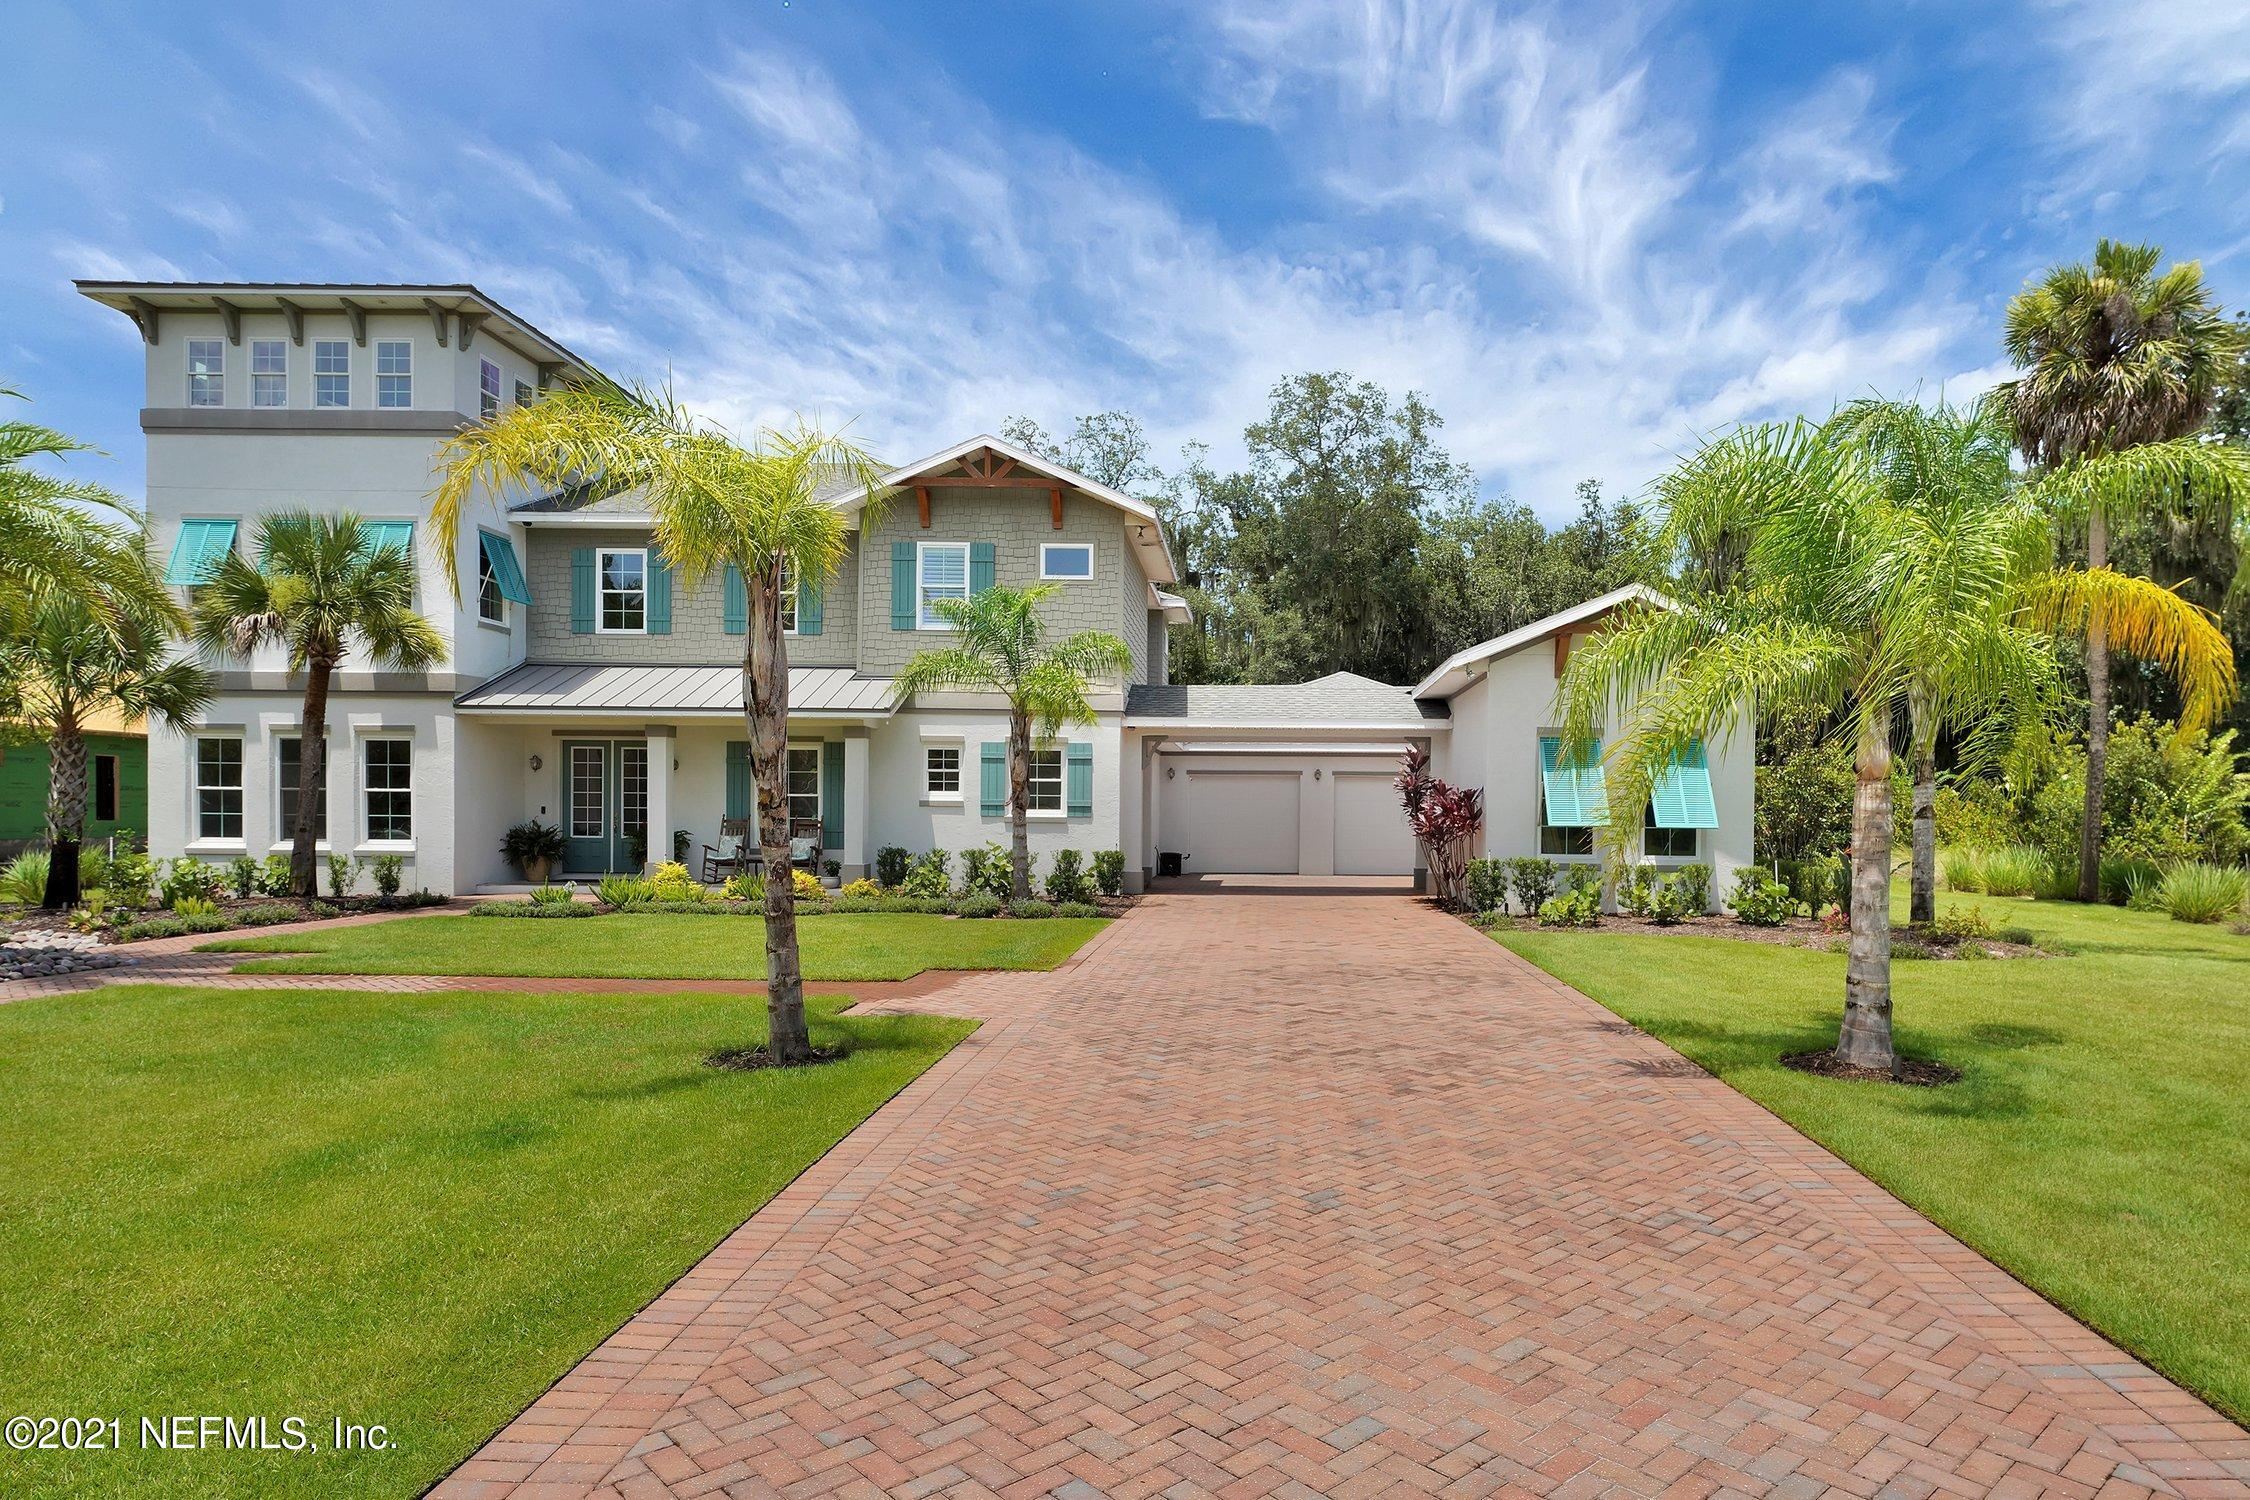 Details for 116 Leaning Tree Dr, ST AUGUSTINE, FL 32095